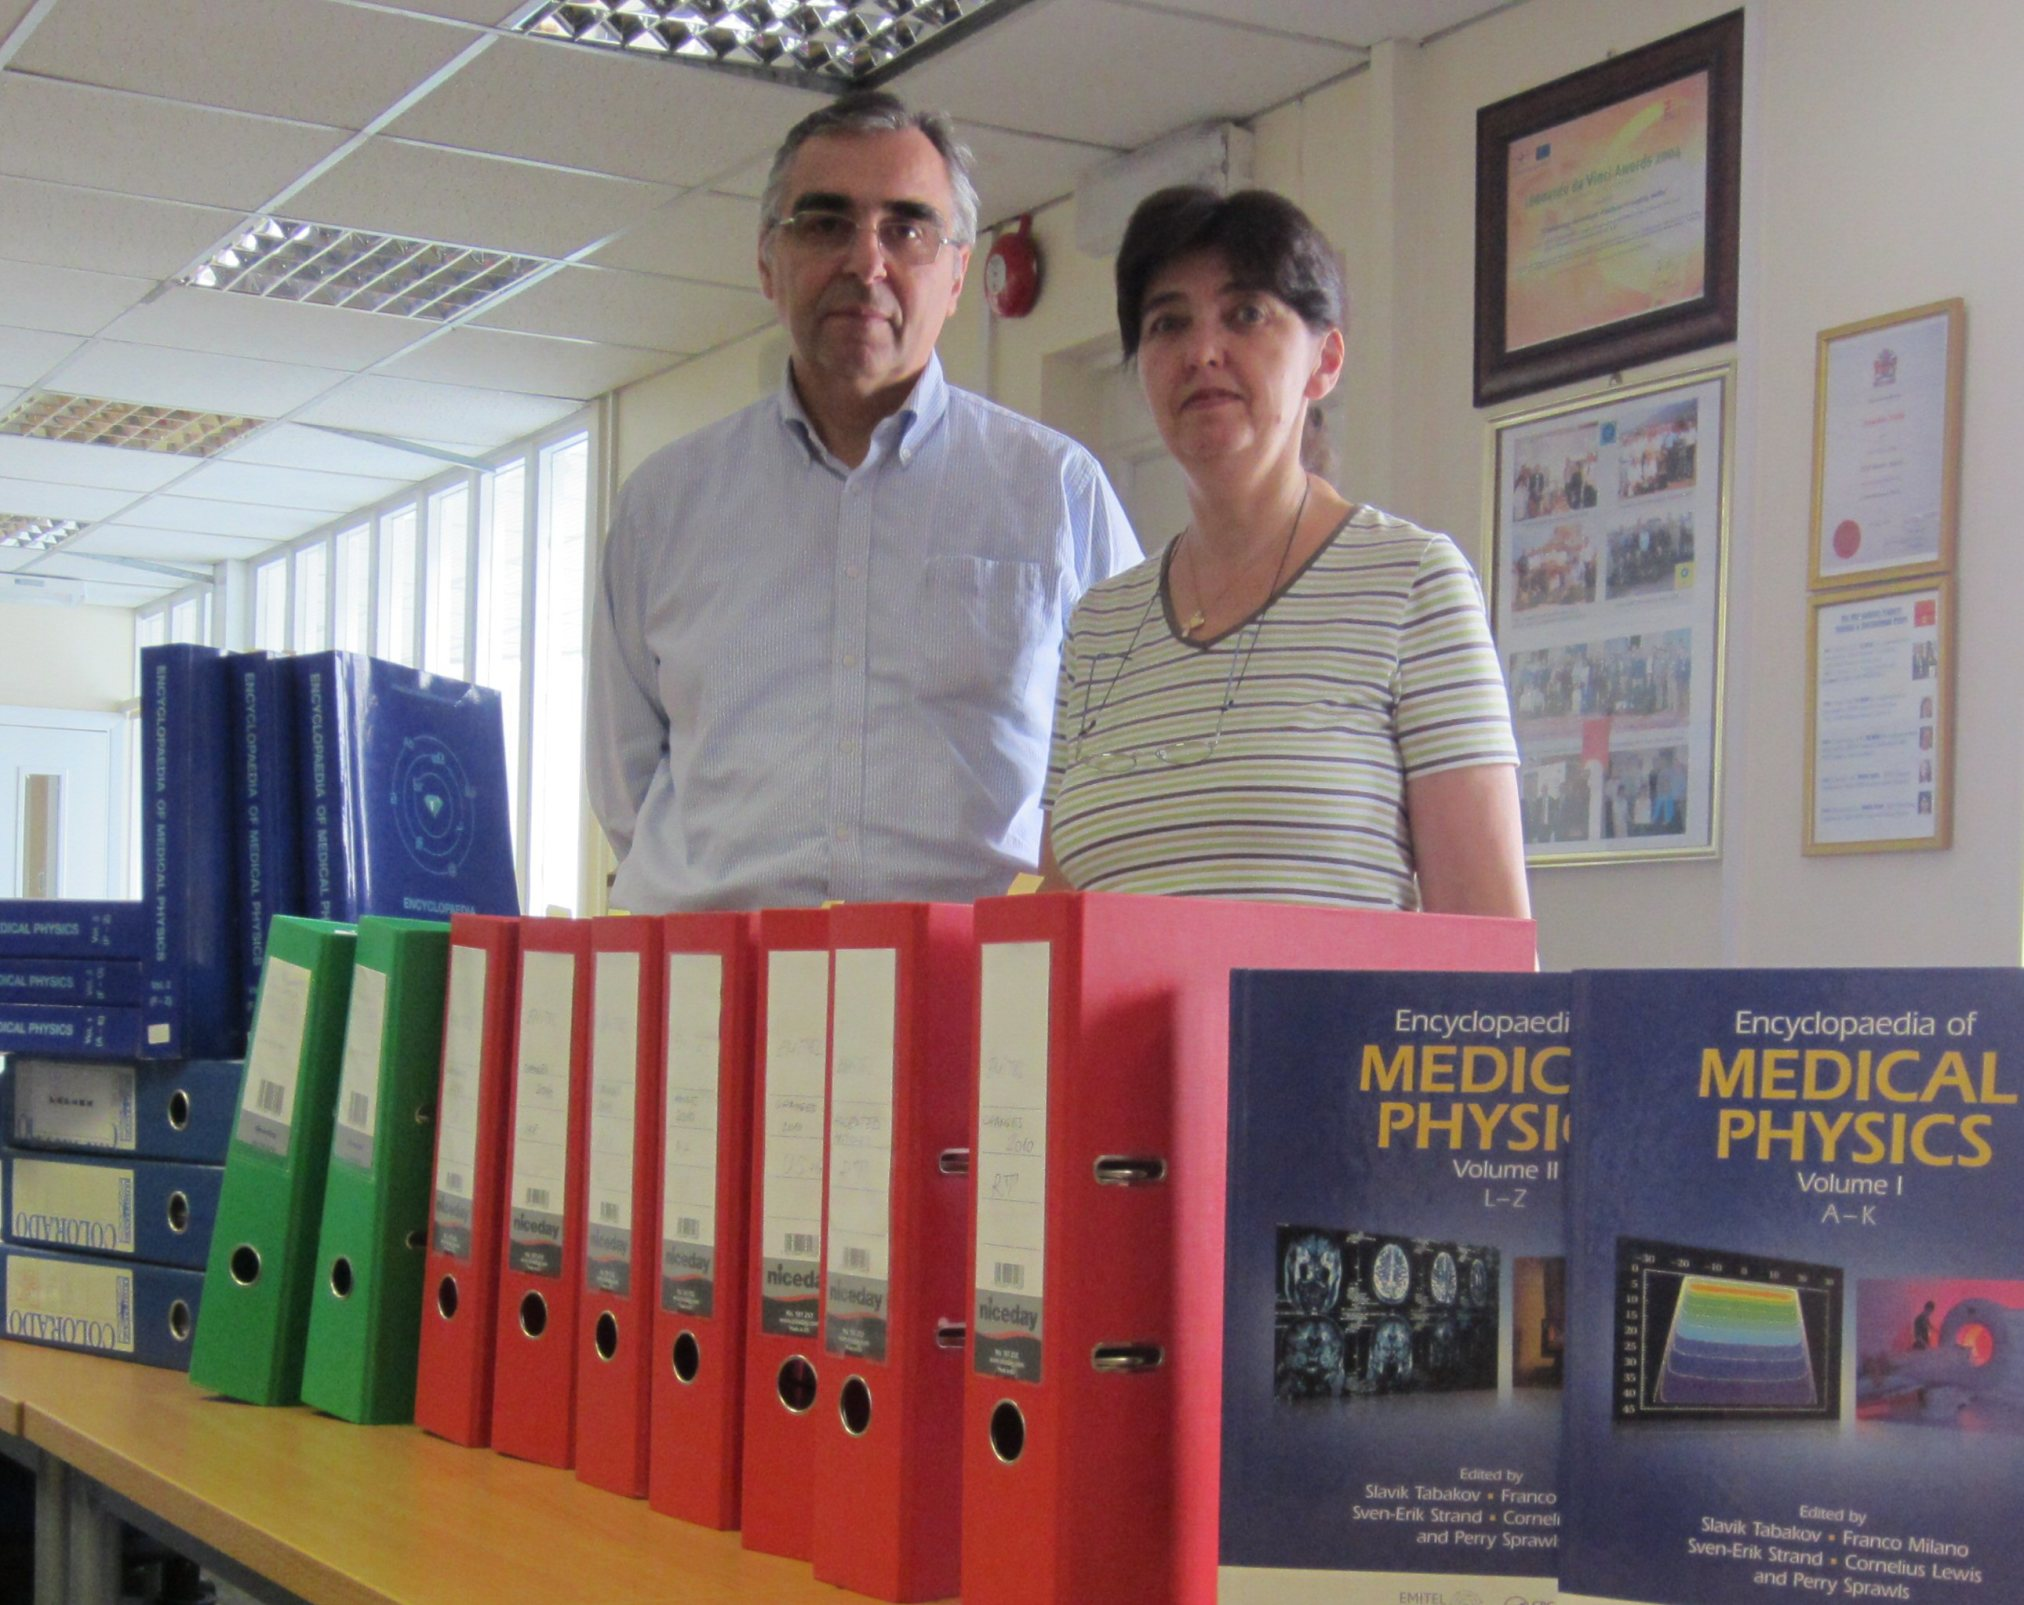 prof_S.Tabakov and Dr. V.Tabakova with Encyclopedia MedPhysics